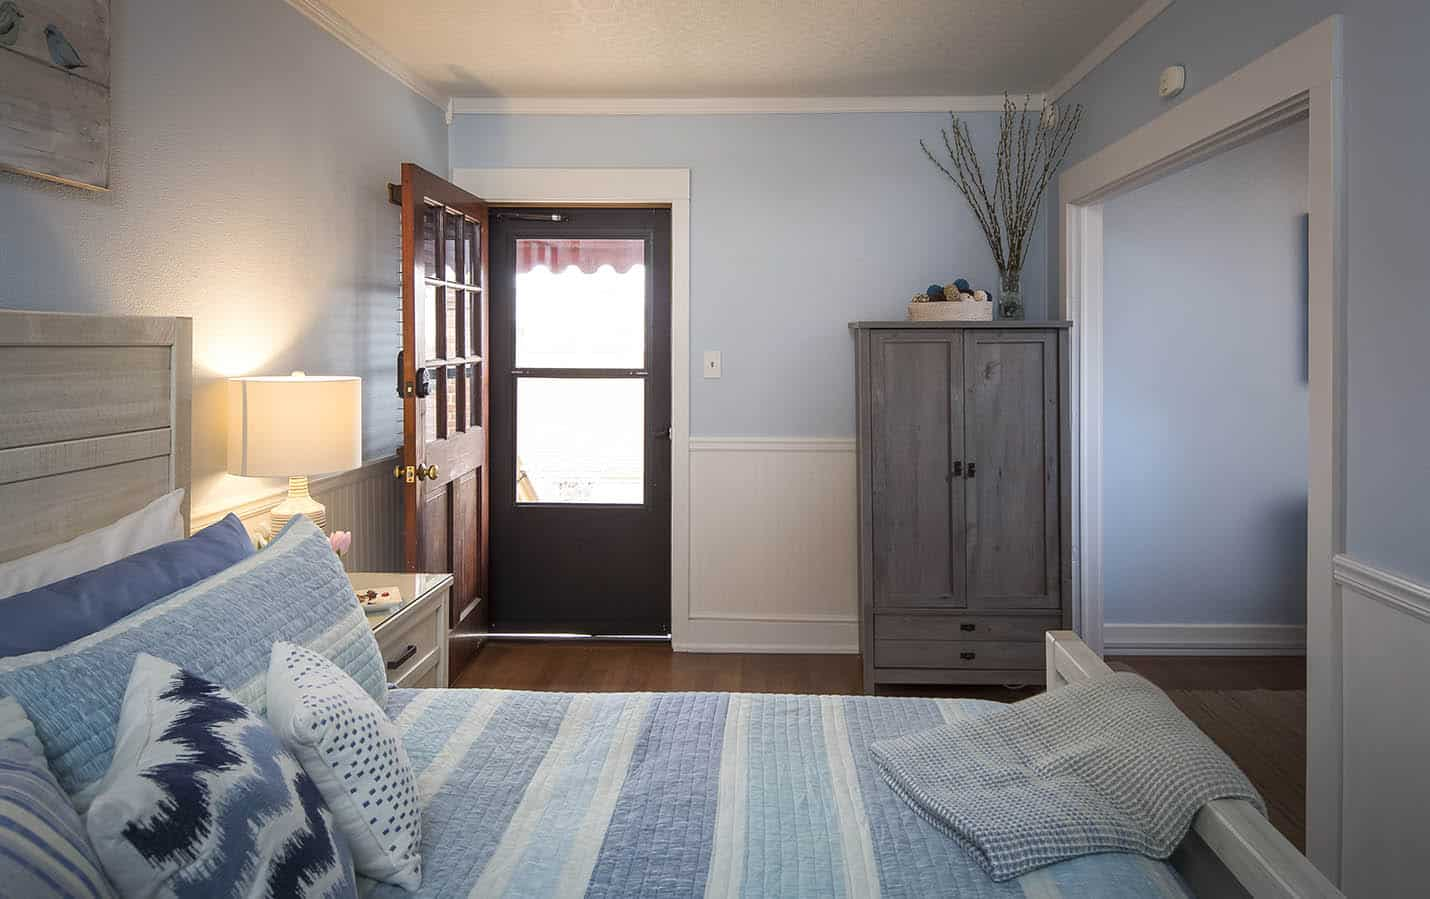 Entry view with layout of the room with bed and freestanding closet